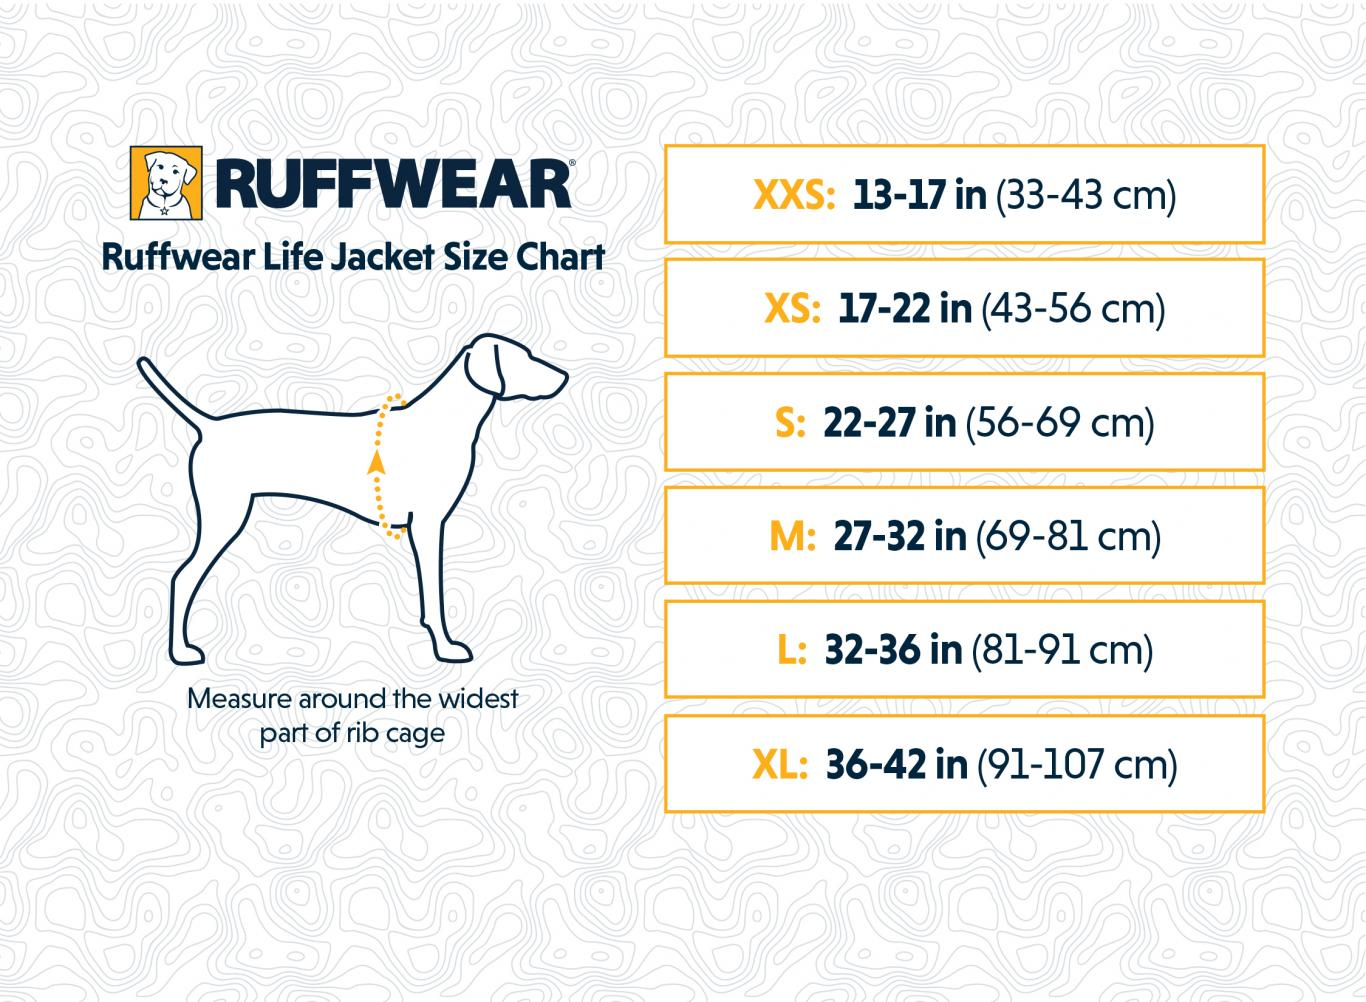 Ruffwear-Harnesses-Sizing-Chart-Horizontal-7